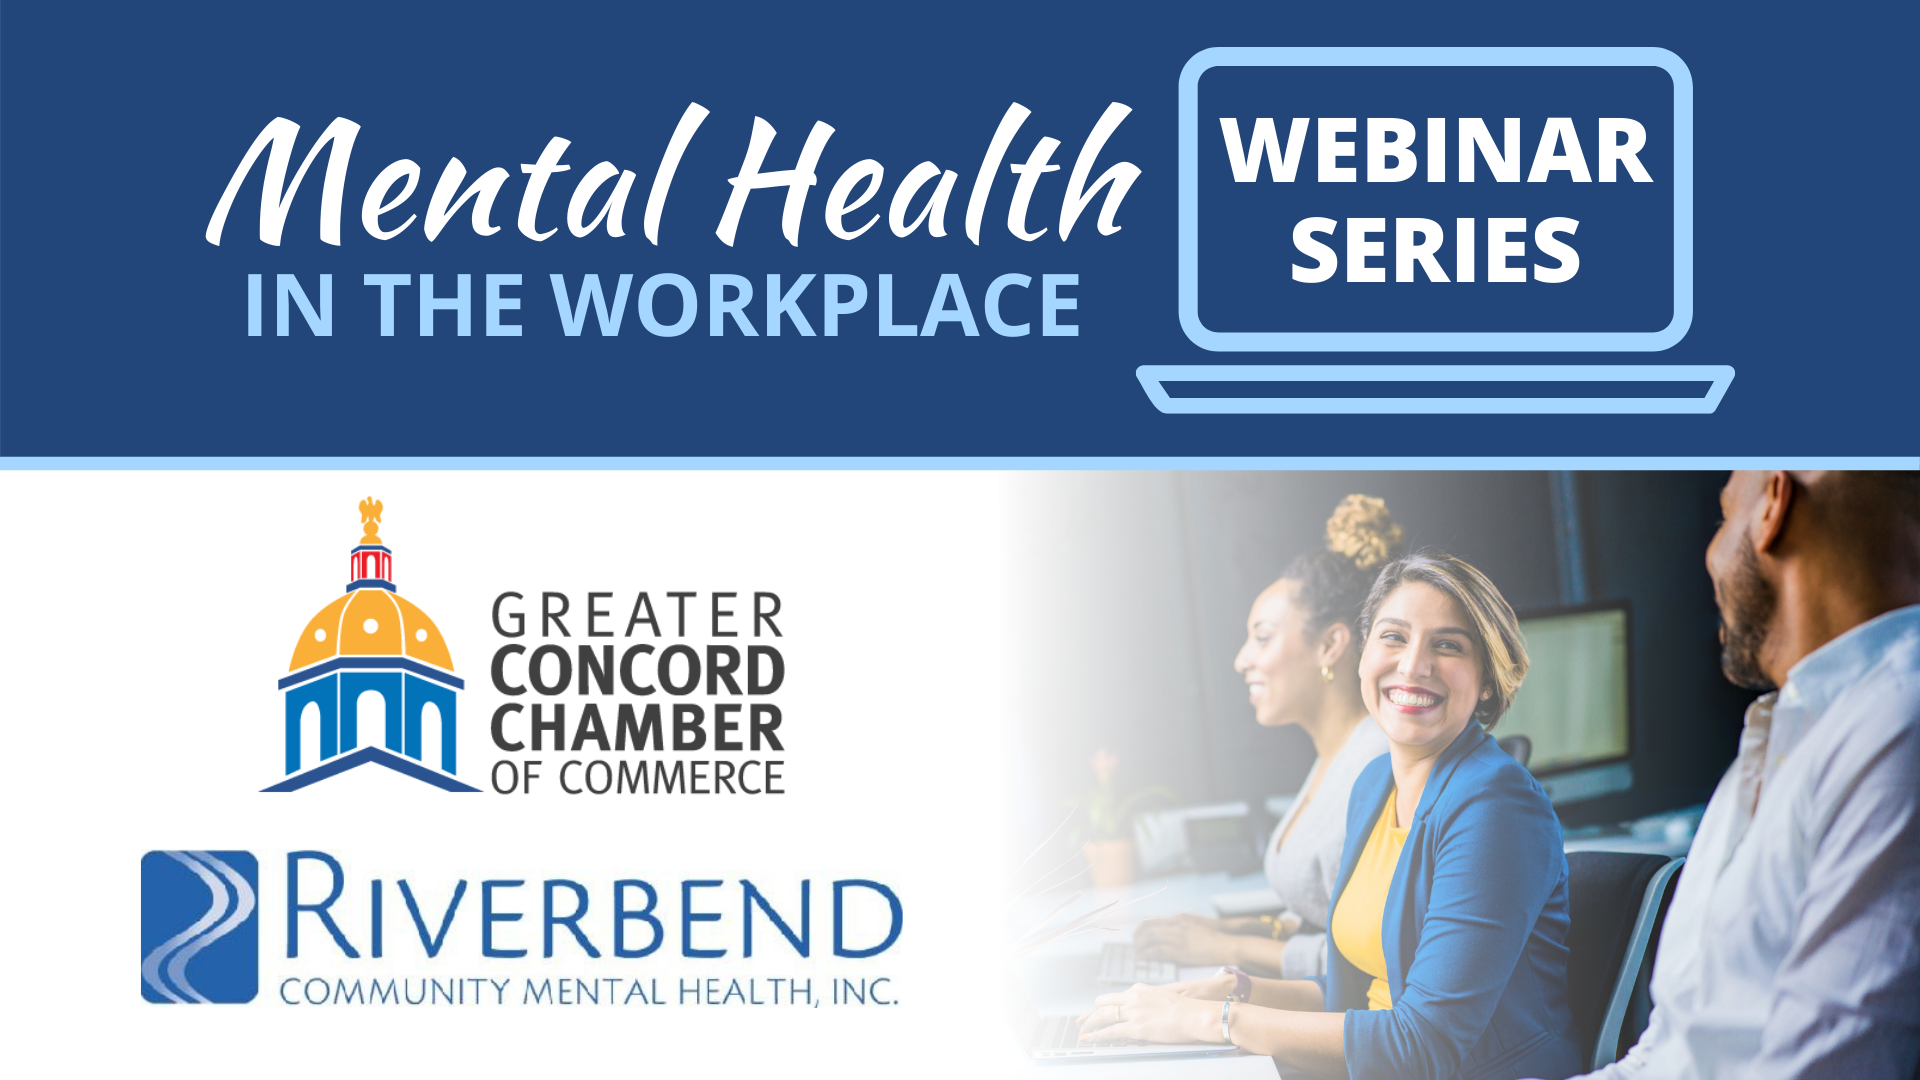 Webinar series with Riverbend Community Mental Health, Inc.